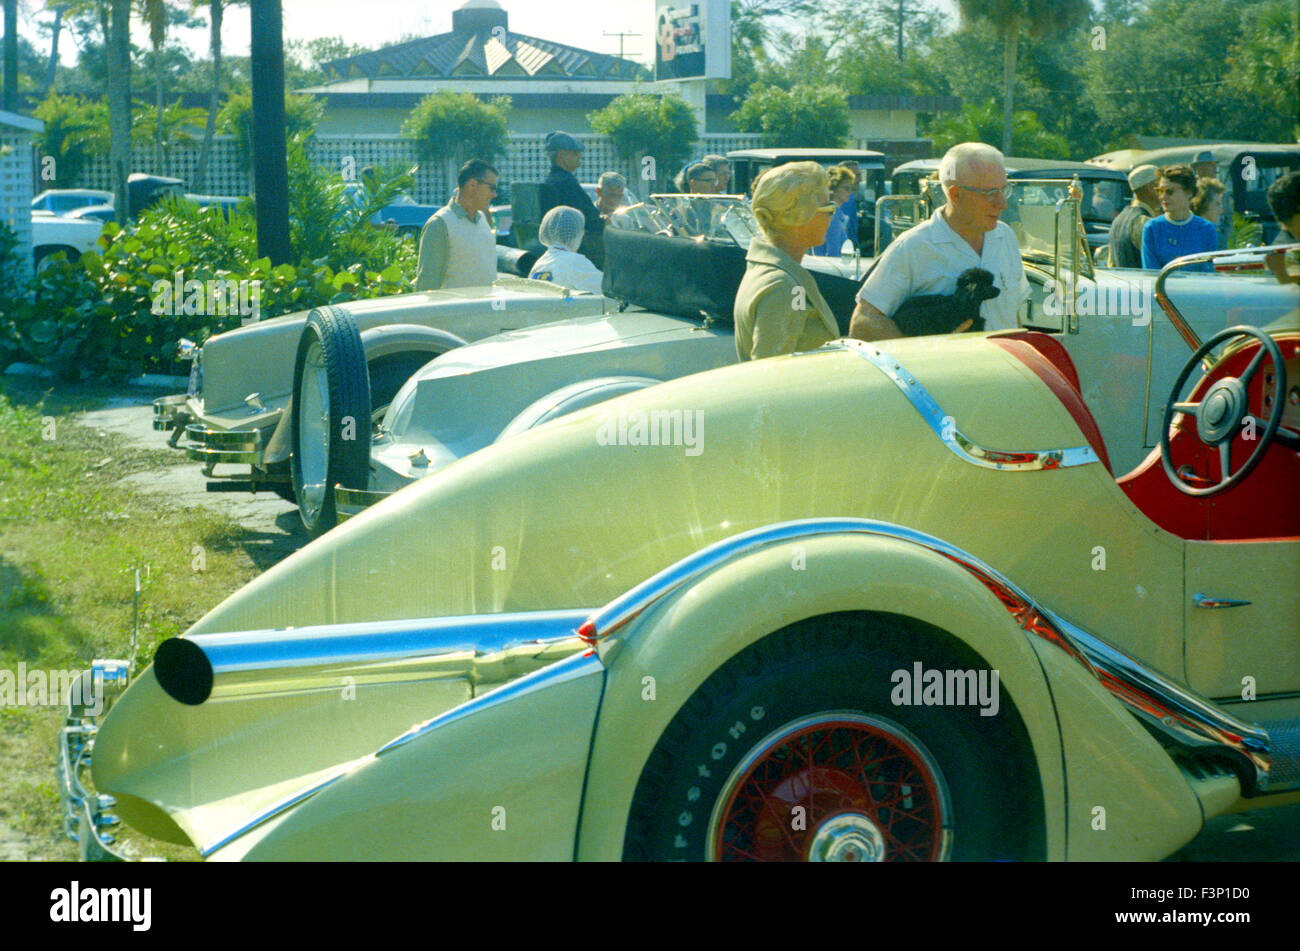 early sports cars at 1960s car show in Florida Stock Photo: 88379900 ...